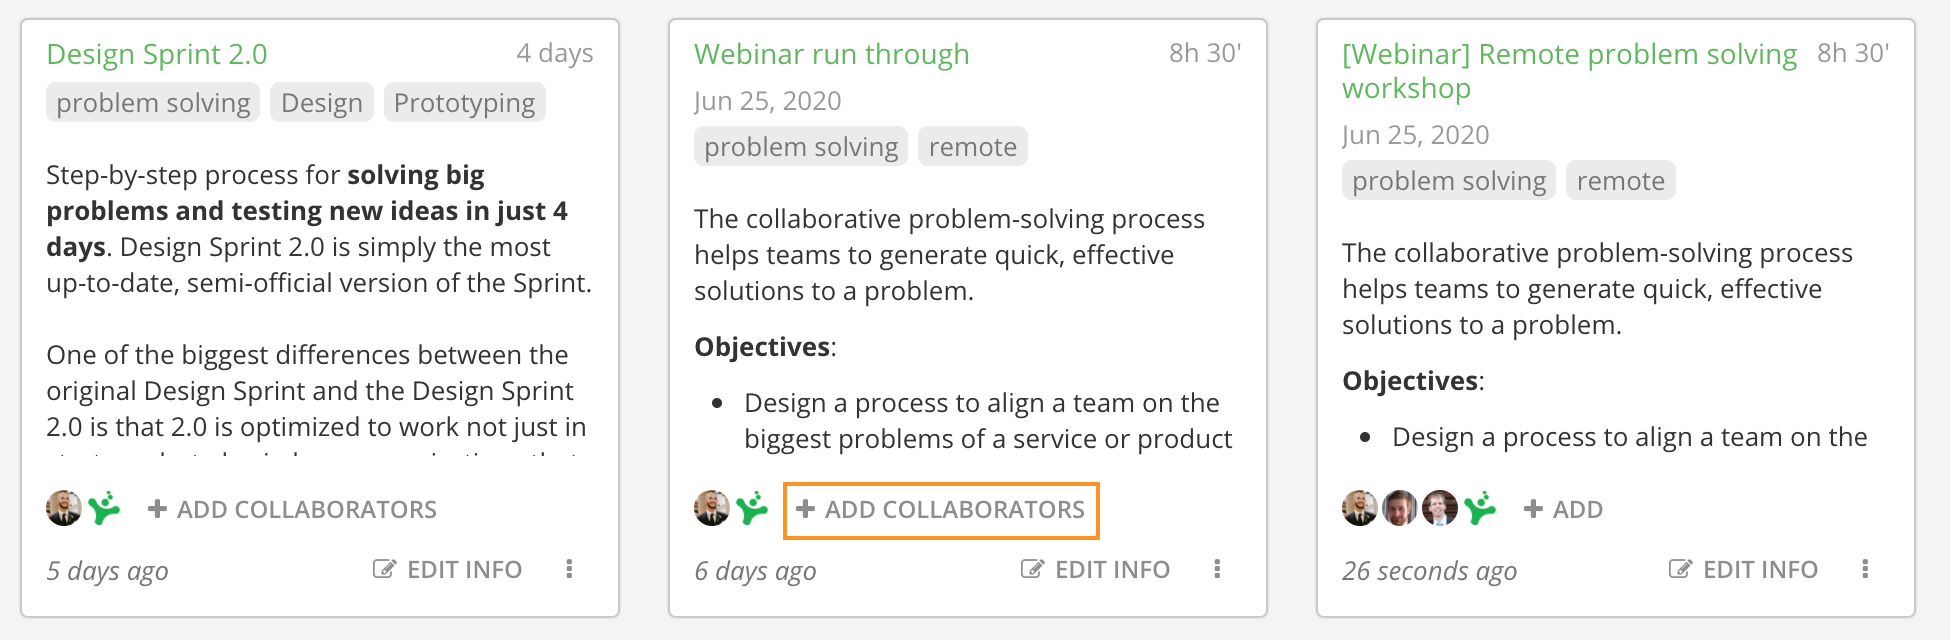 Adding a collaborator directly from your workspace